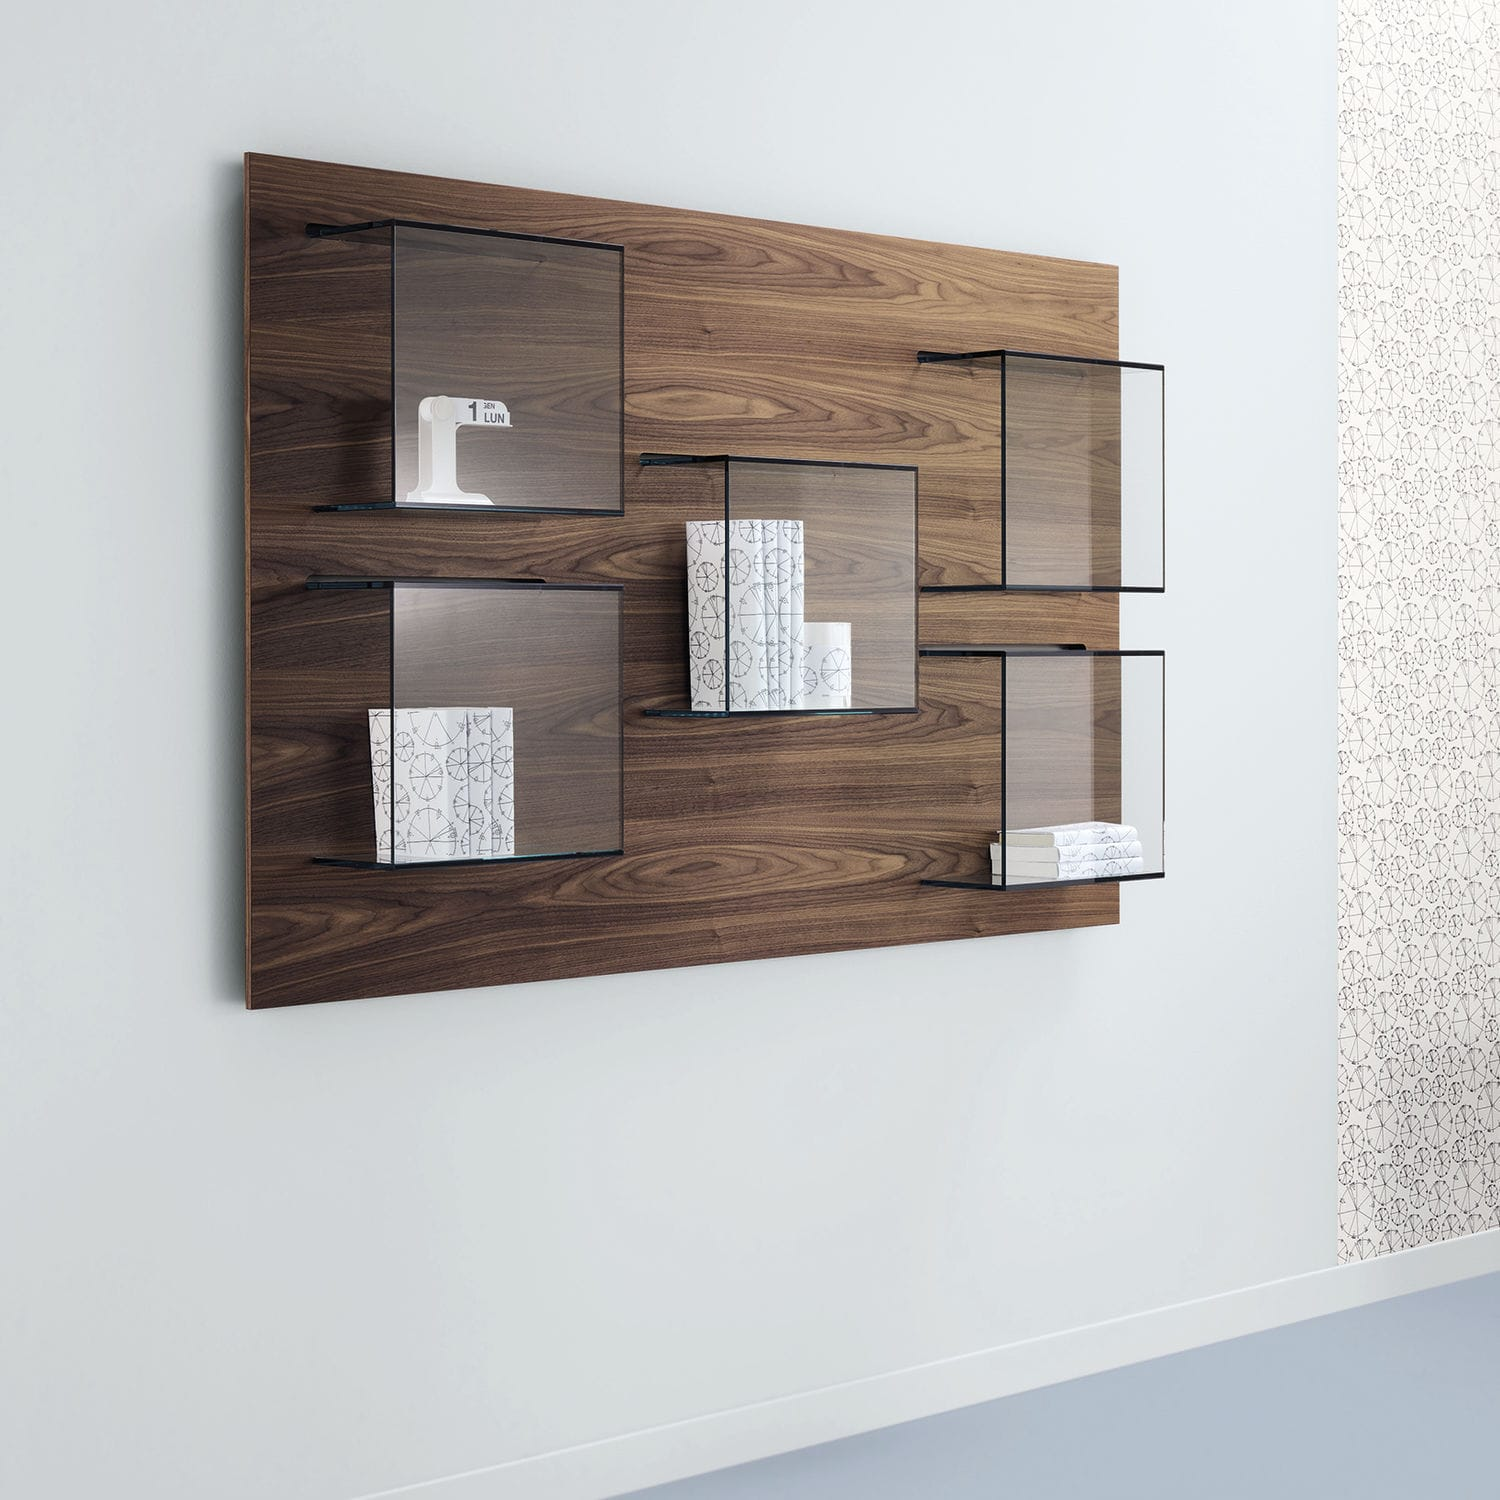 Admirable Dazibao By Gonzo Vicari Wall Mounted Shelf Contemporary Walnut Glass By Tonelli Design Archiexpo Home Interior And Landscaping Oversignezvosmurscom